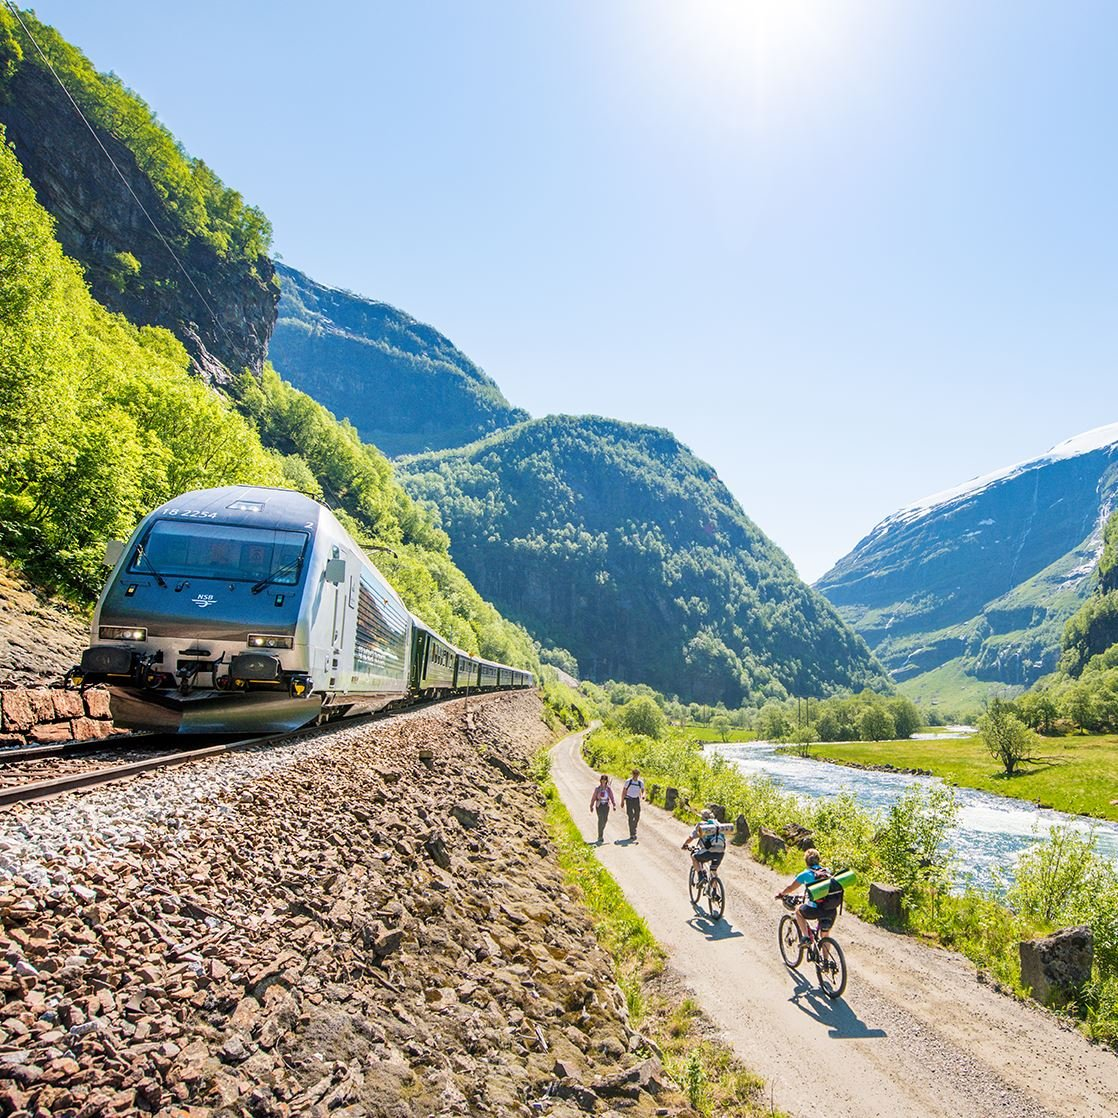 Sverre Hjørnevik, The Flåm Railway + hiking the Flåm valley